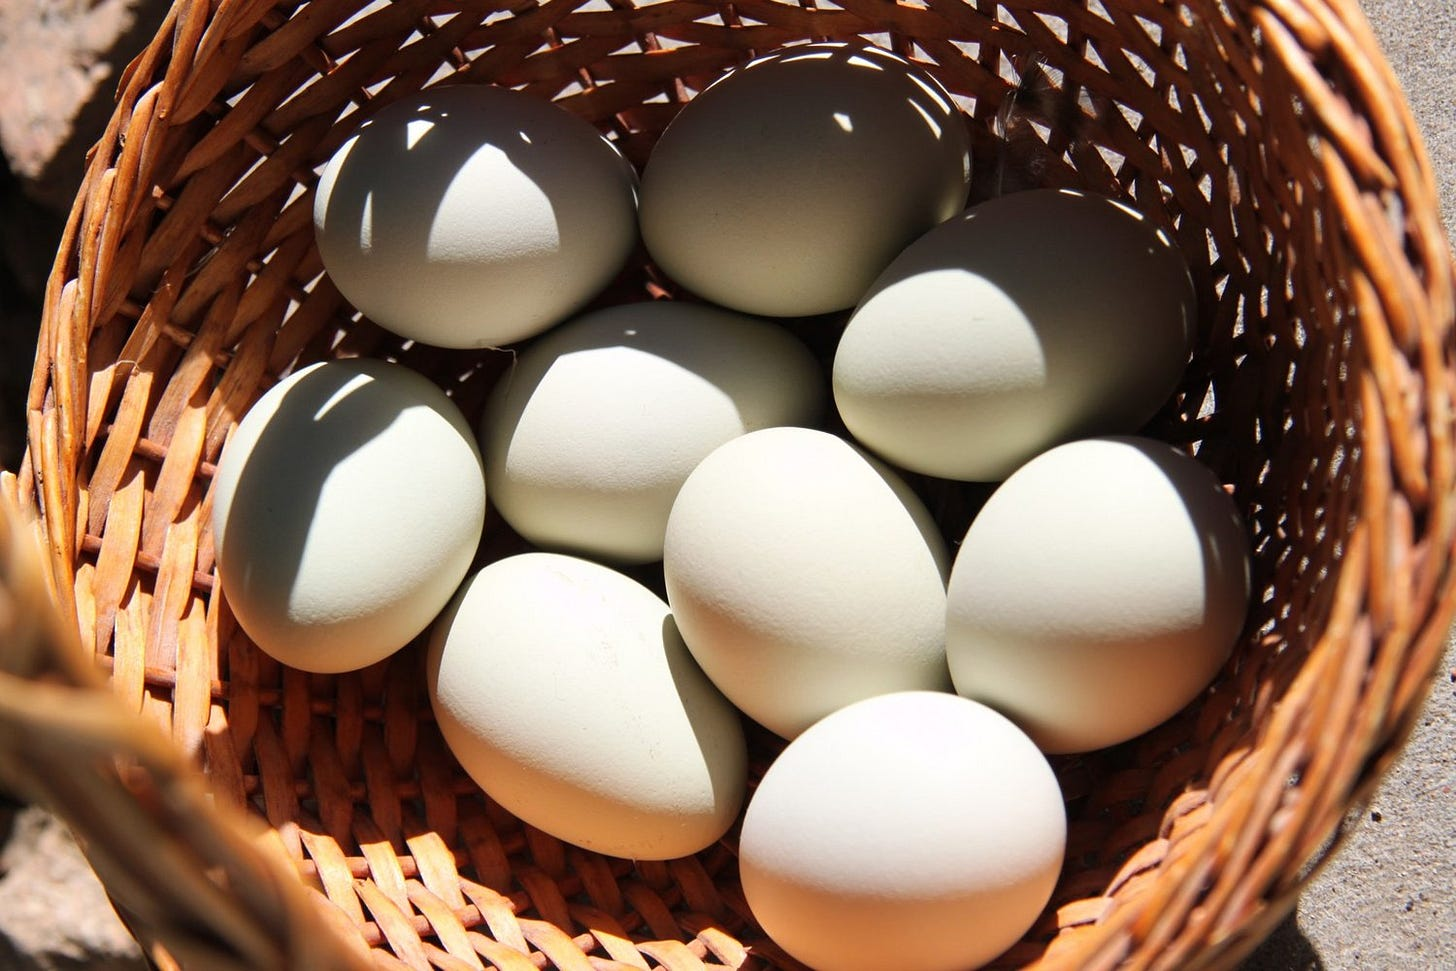 Putting all your eggs in one basket | Amerasia Consulting